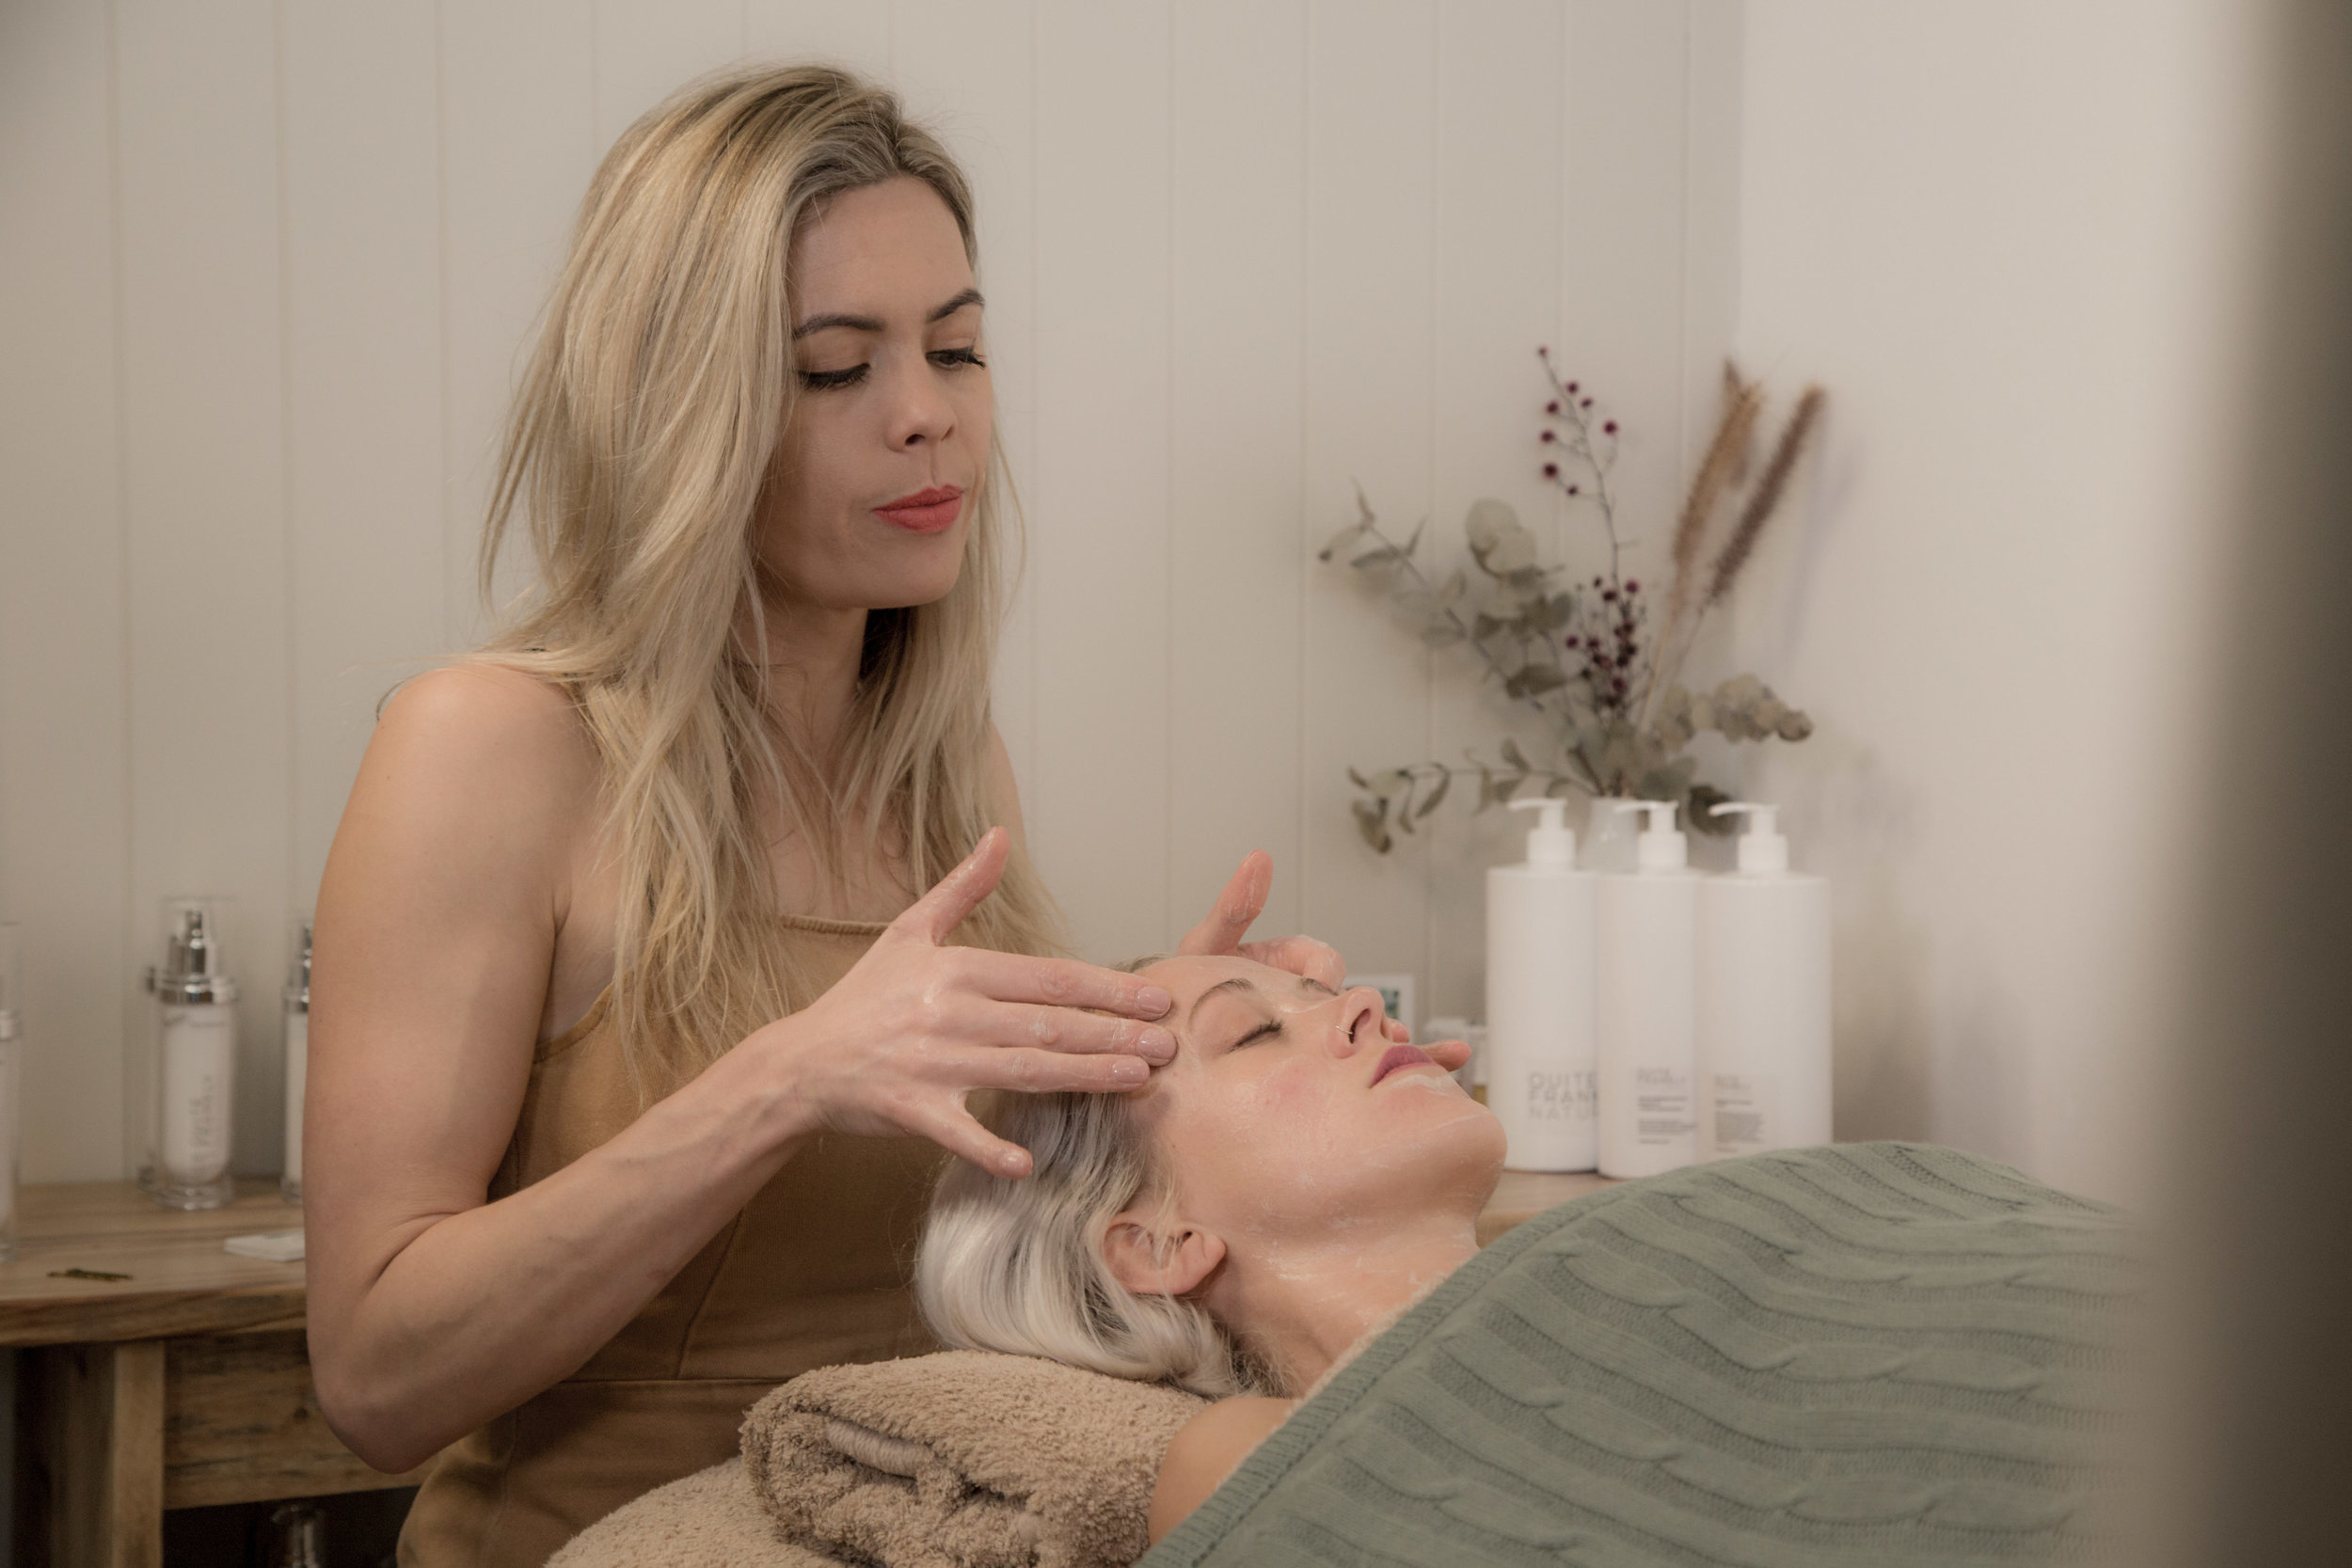 FACIALS - All of our Facials are using professional skincare ranges that are scientifically formulated, plant based, organic, environmentally sustainable, unisex vegan, palm oil free and cruelty free. Each facial will be customised to suit your skin concerns with a detailed treatment plan and professional home care advice with simplicity, multi-use products.